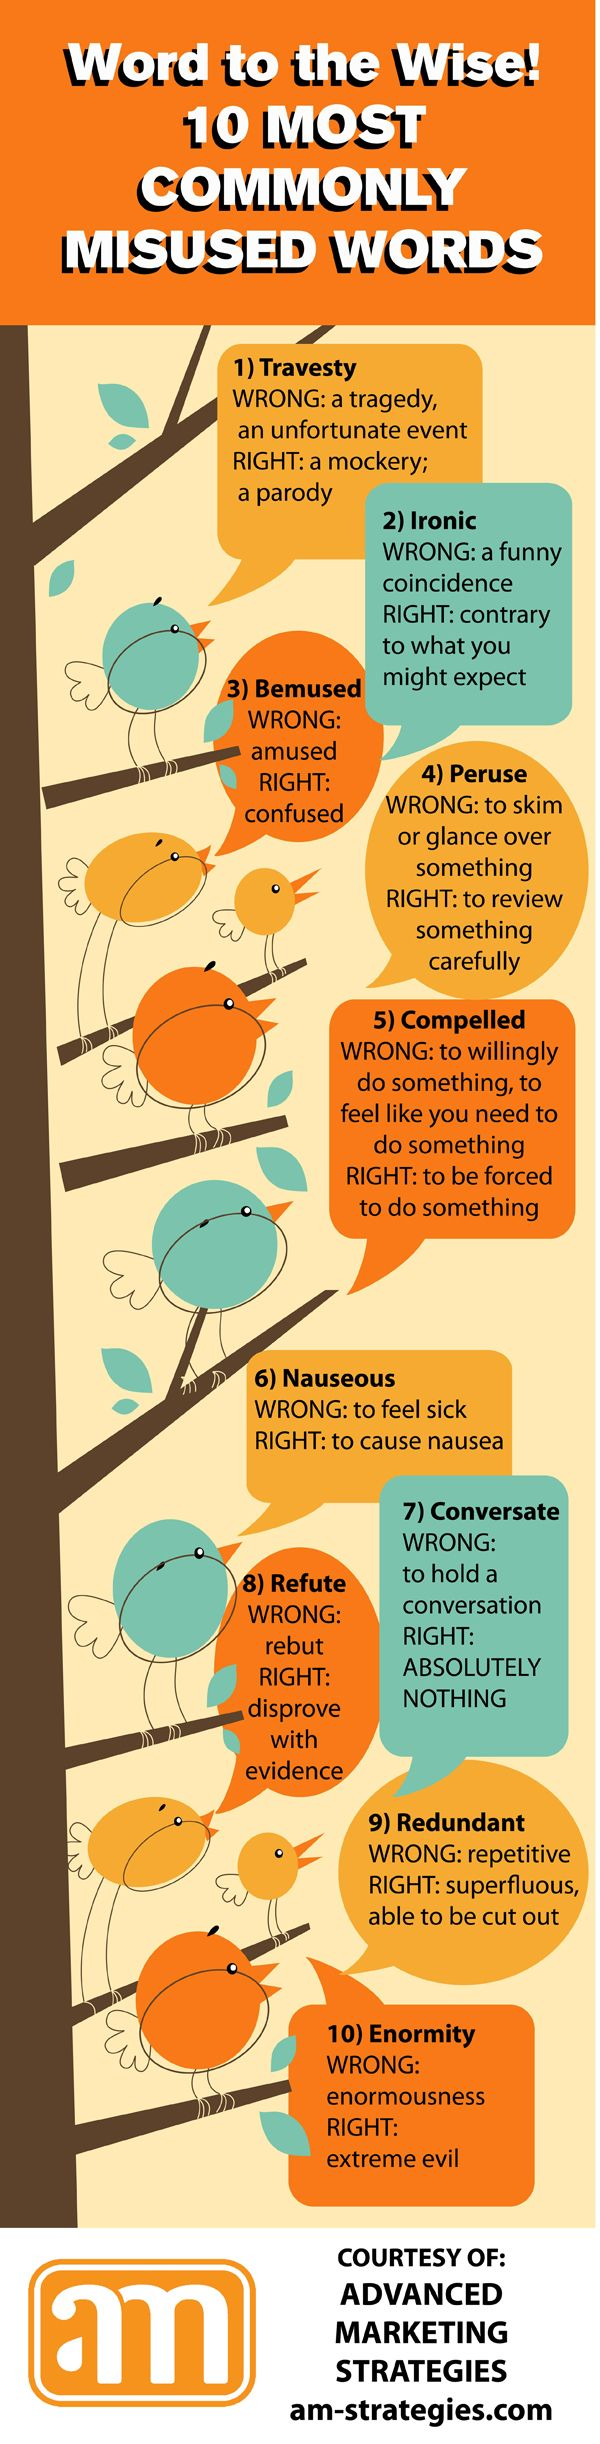 10 commonly misused words. Not so sure about irony but otherwise this is useful.